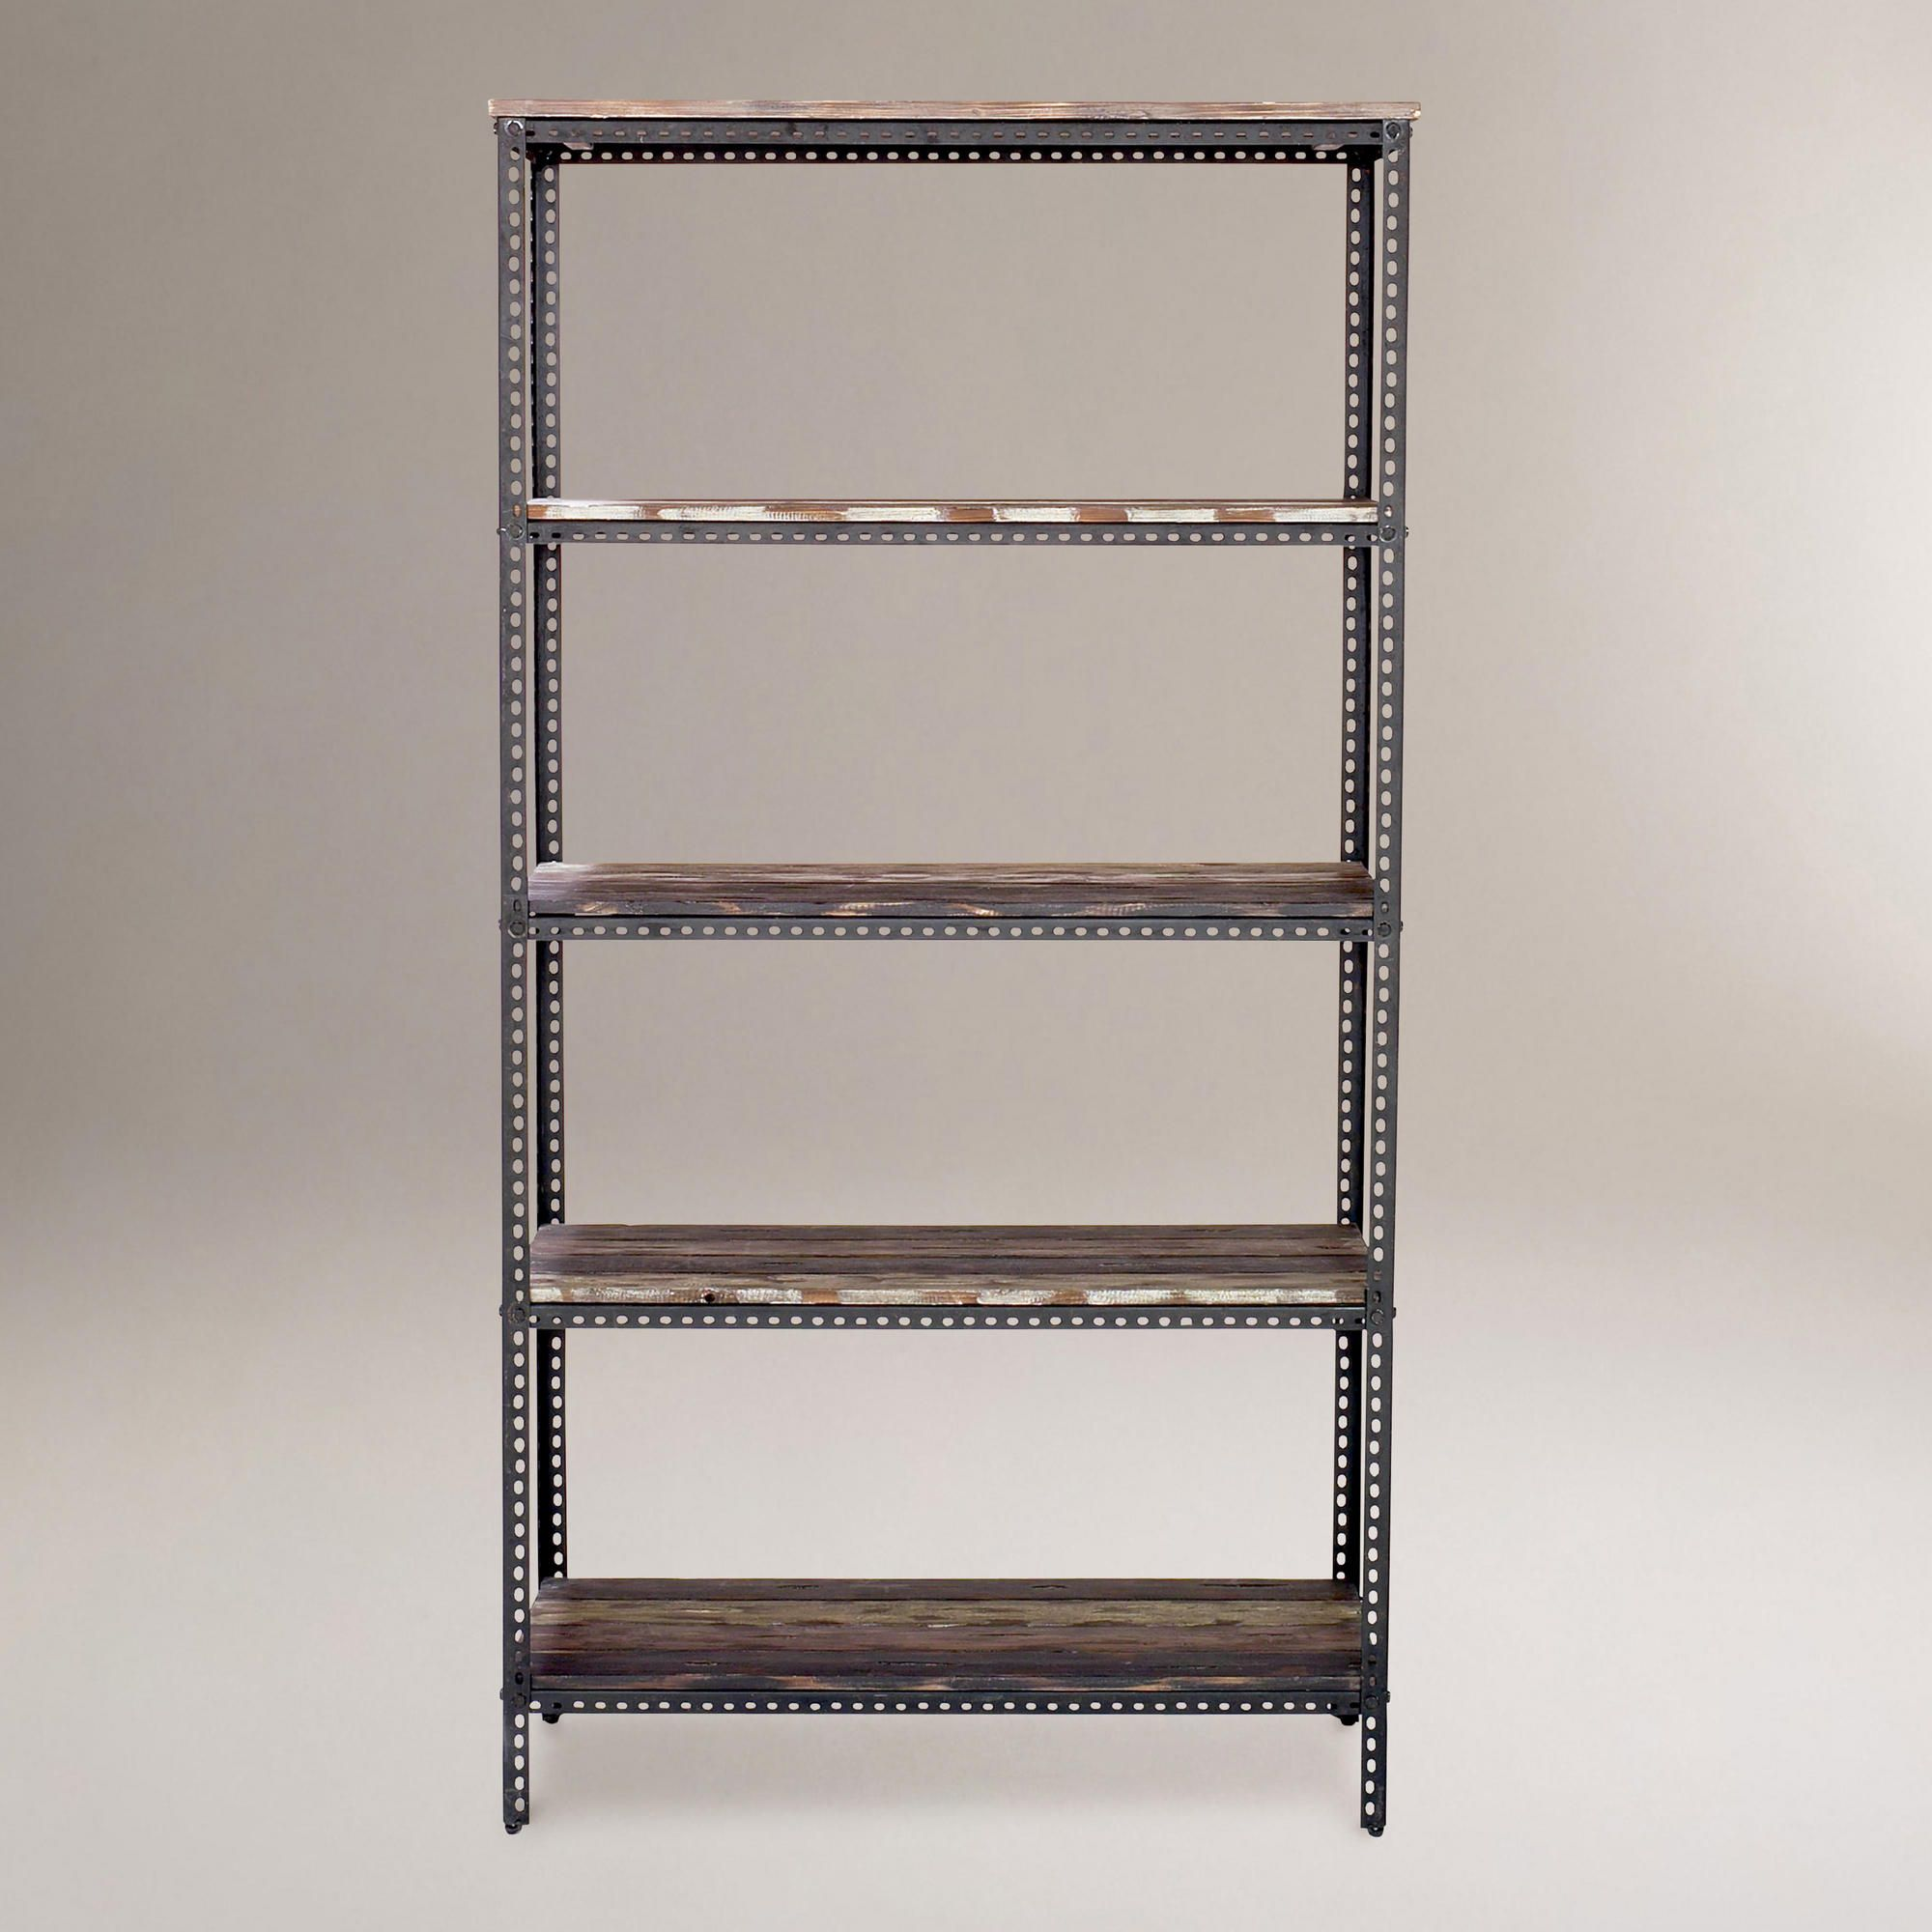 Industrial metal shelf using L-angled steel and salvaged wood.